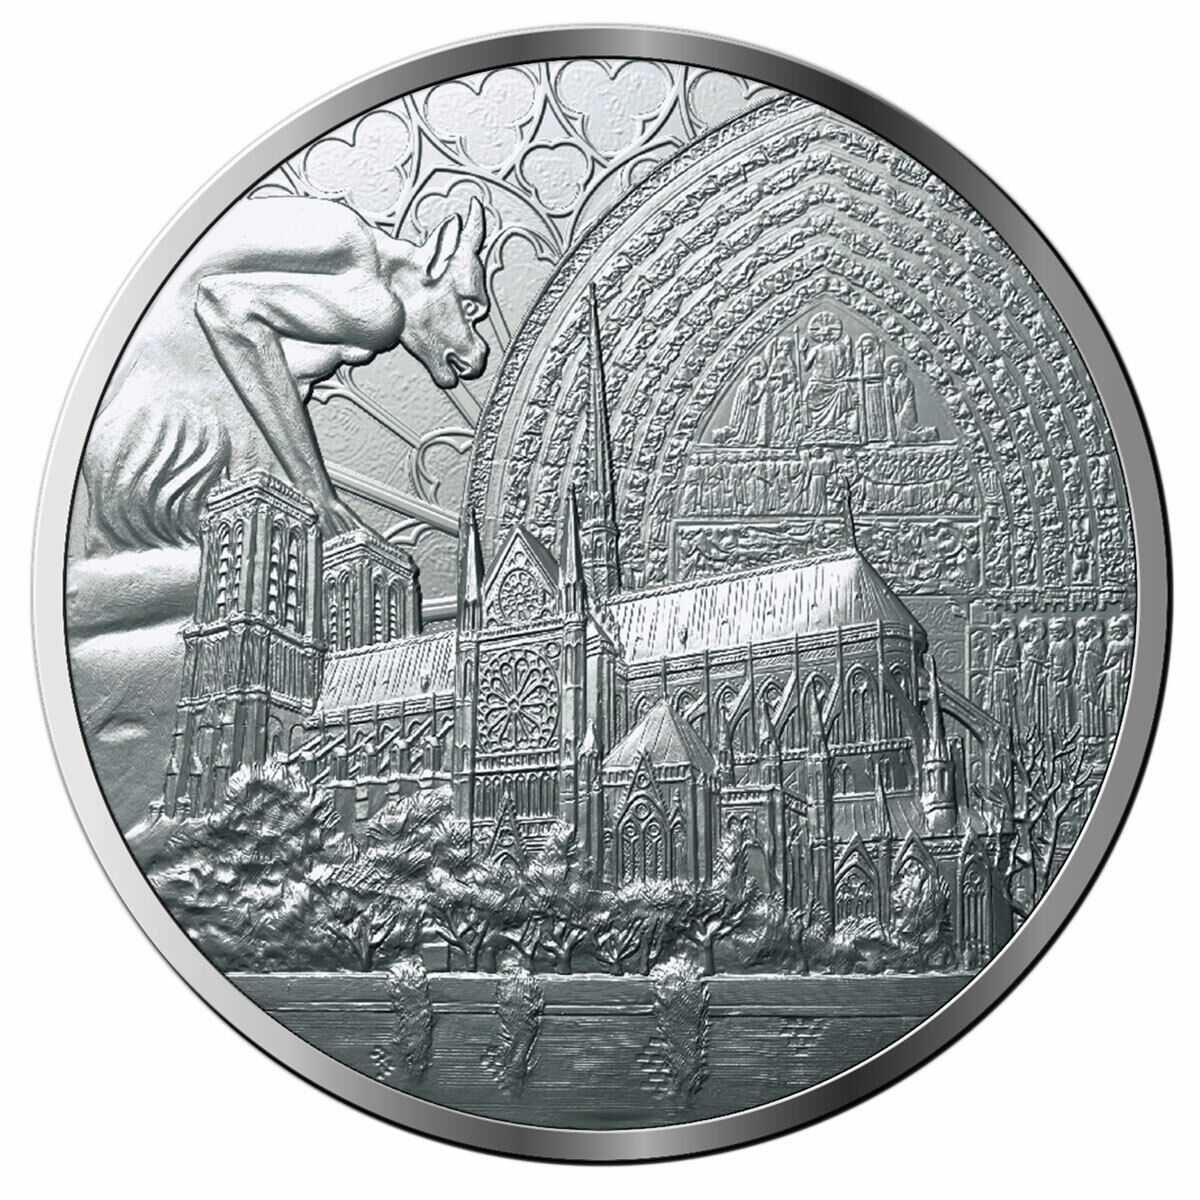 2019 Notre Dame Cathedral Reconstruction Cupronickel Medal BU SKU57980